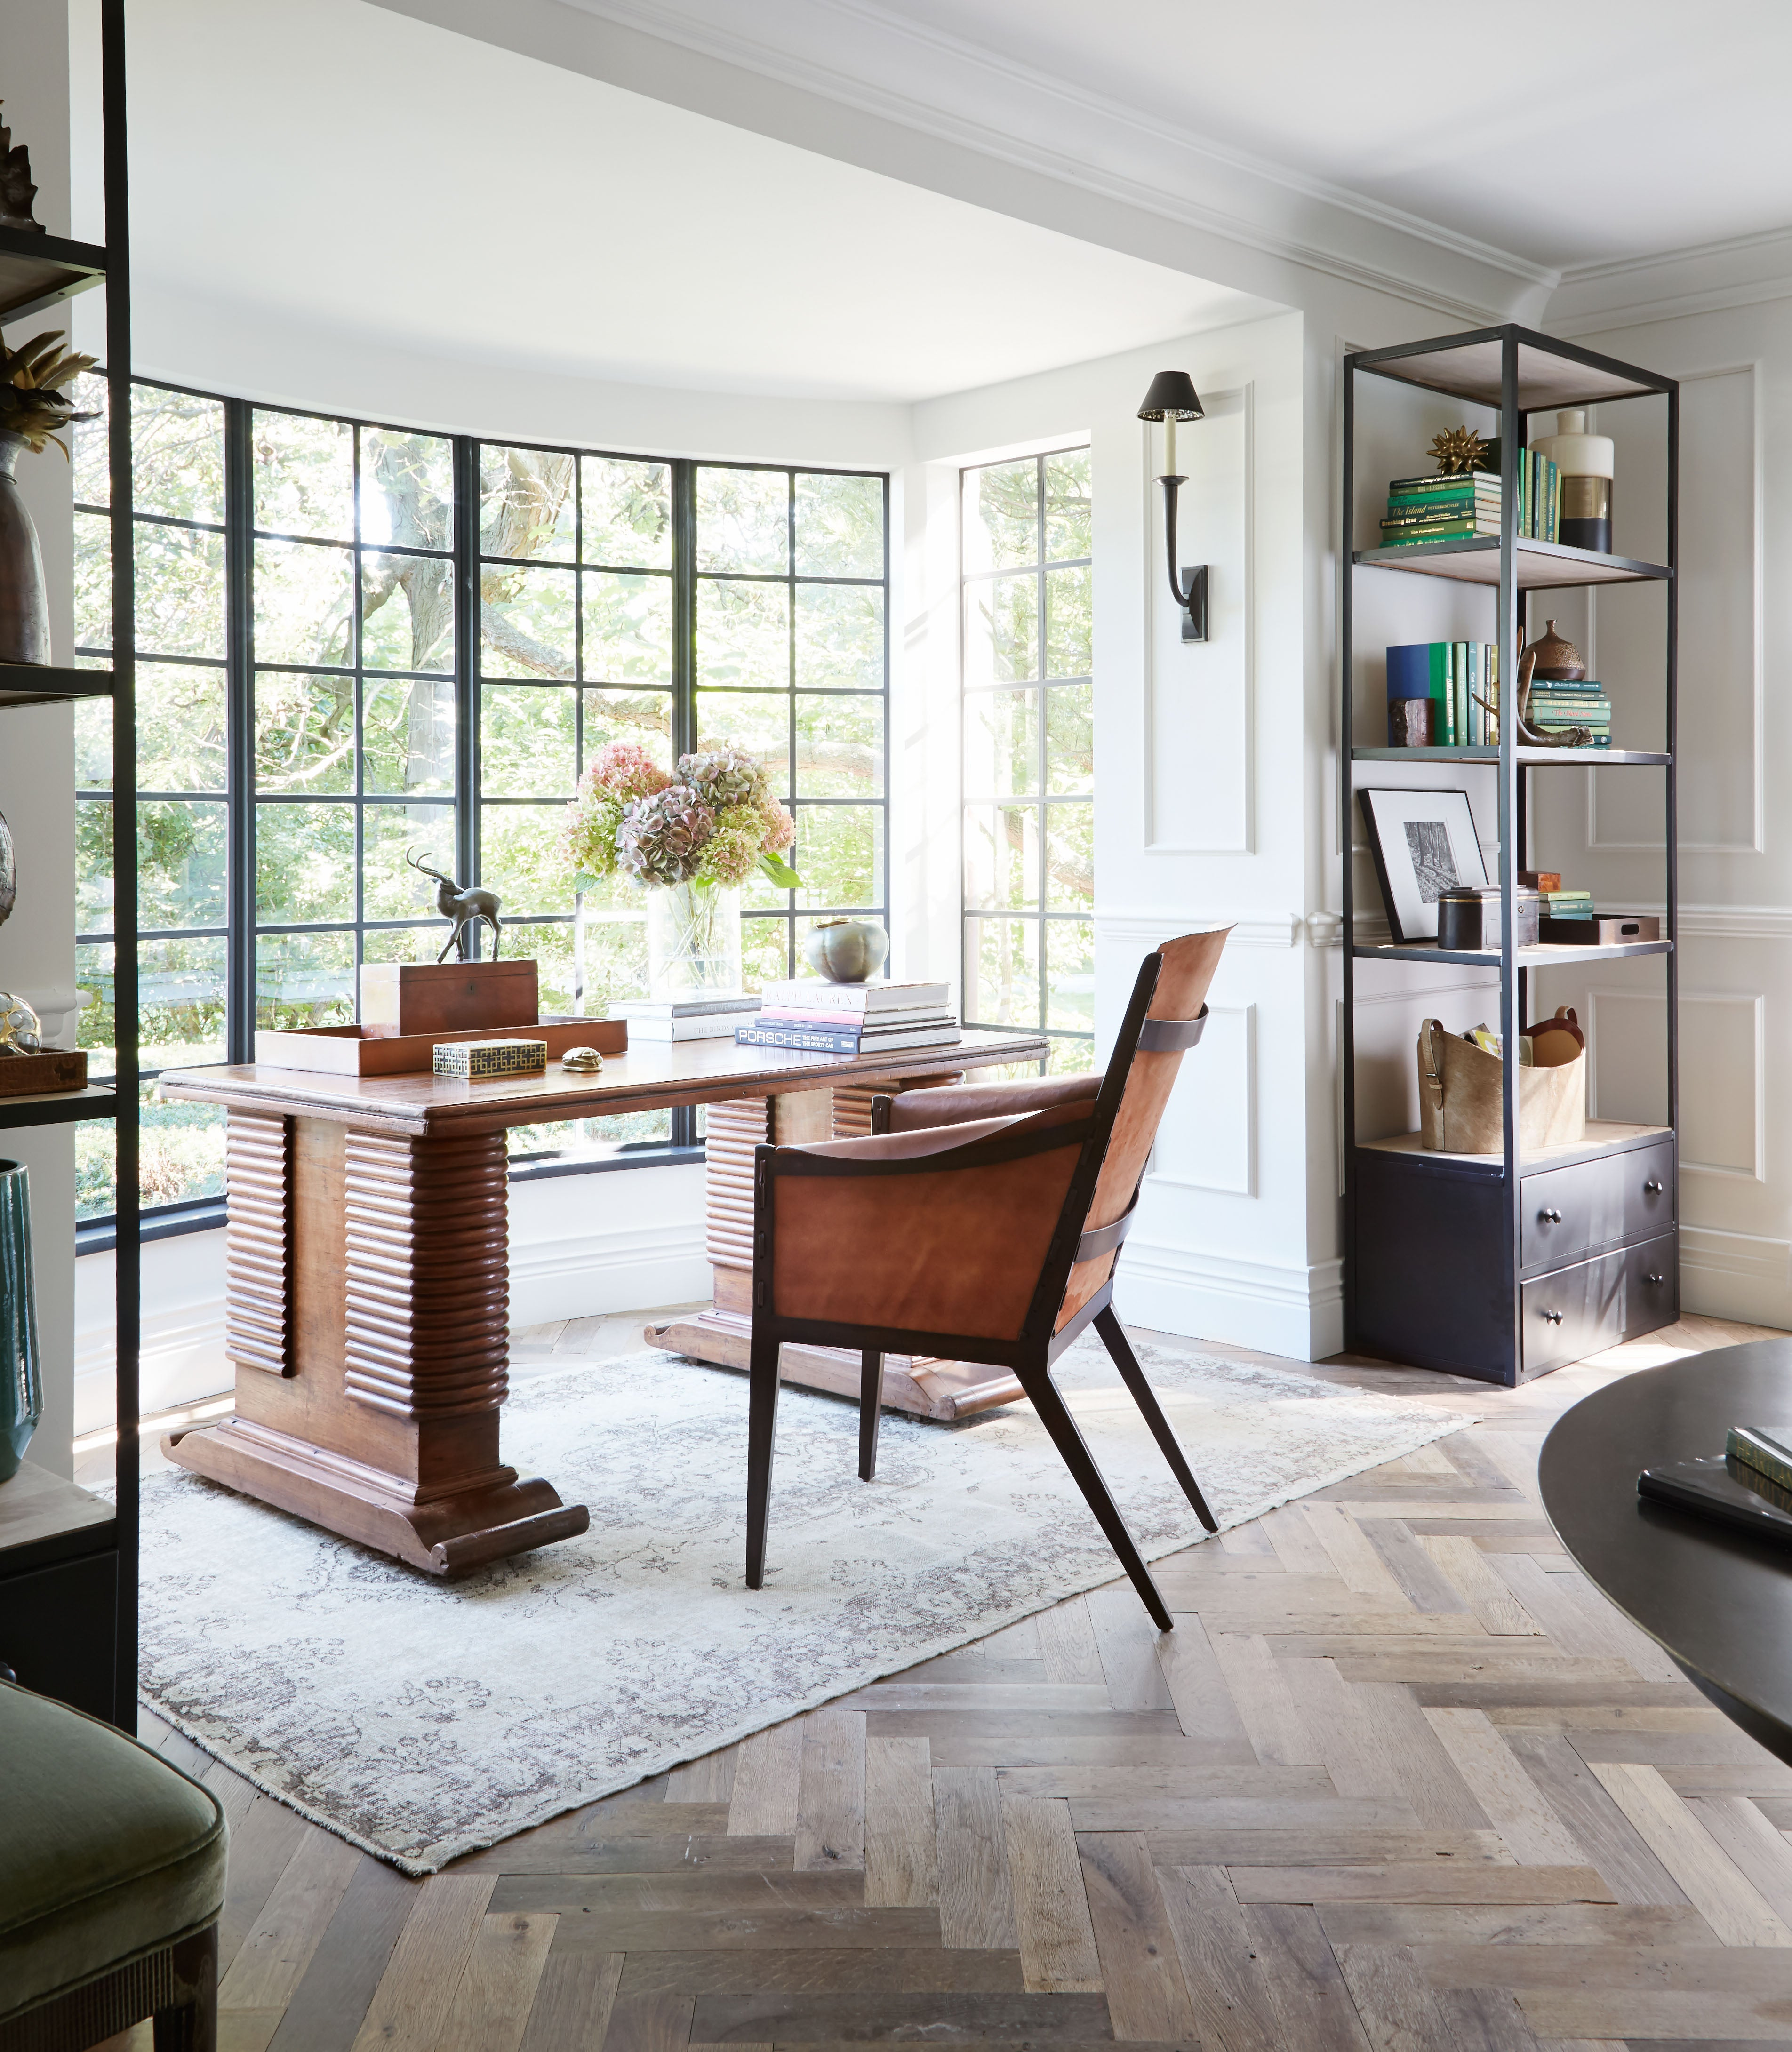 Country Club By Summer Thornton Design On 1stdibs